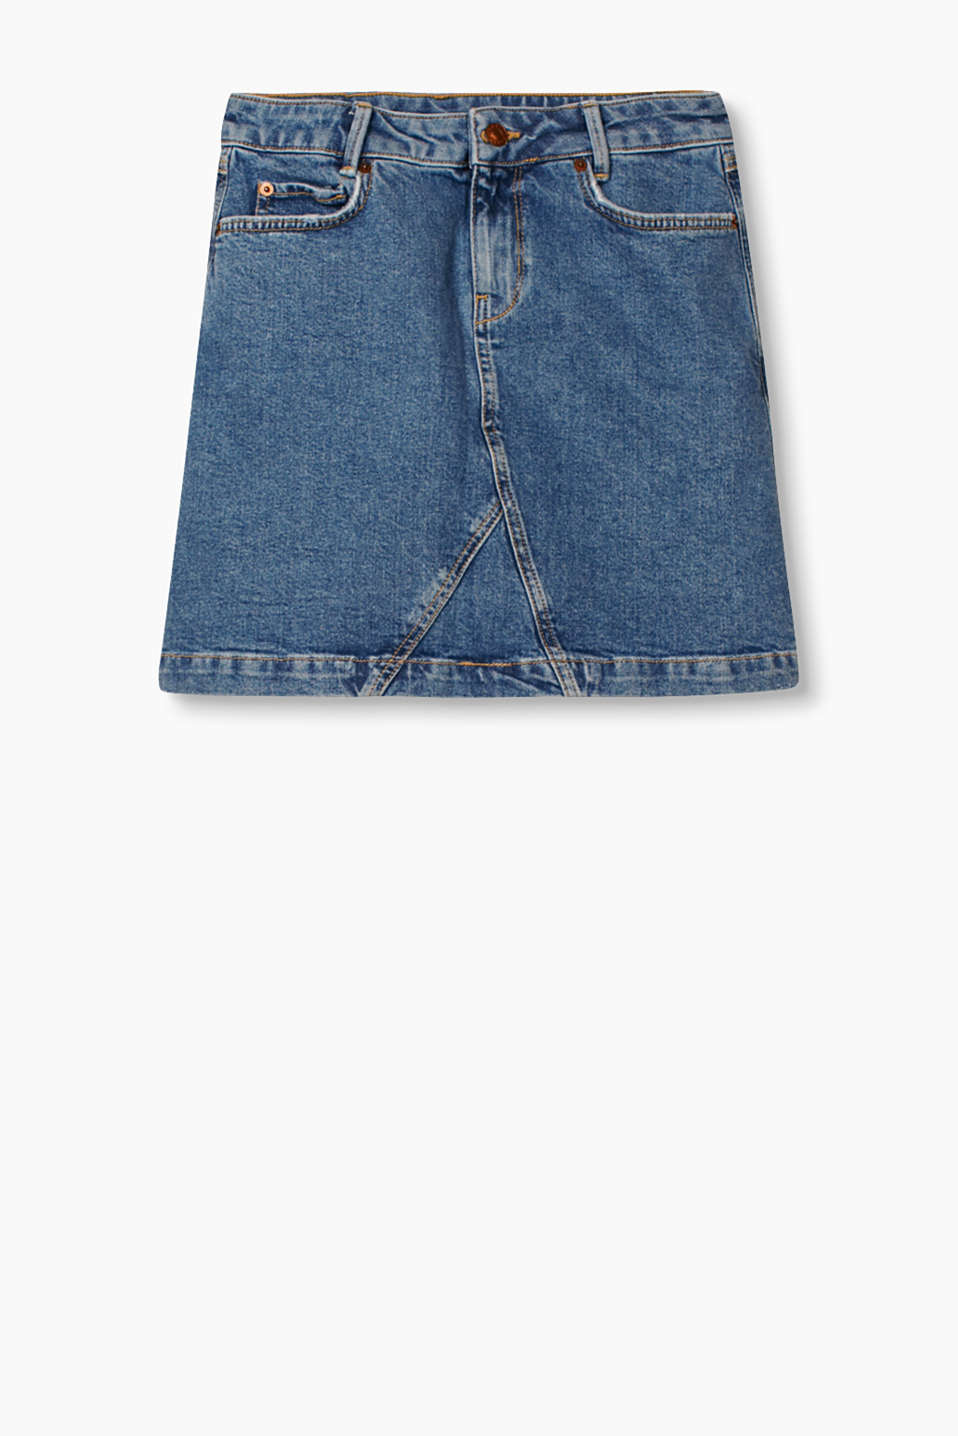 Mini skirt in garment-washed cotton denim with added stretch for comfort